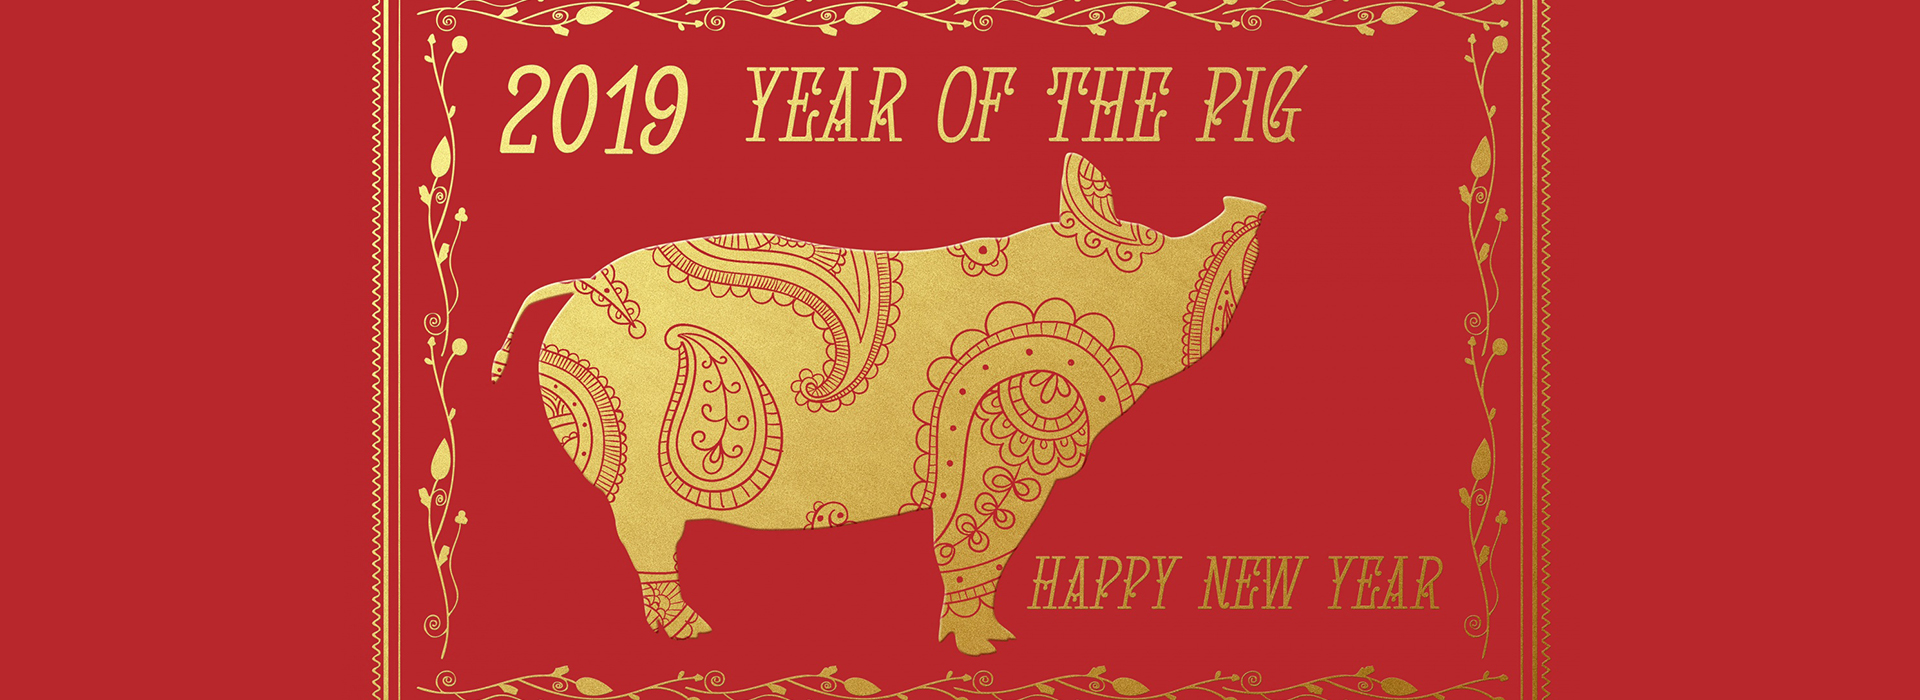 CSUSB Chinese New Year celebration welcomes Year of the Pig